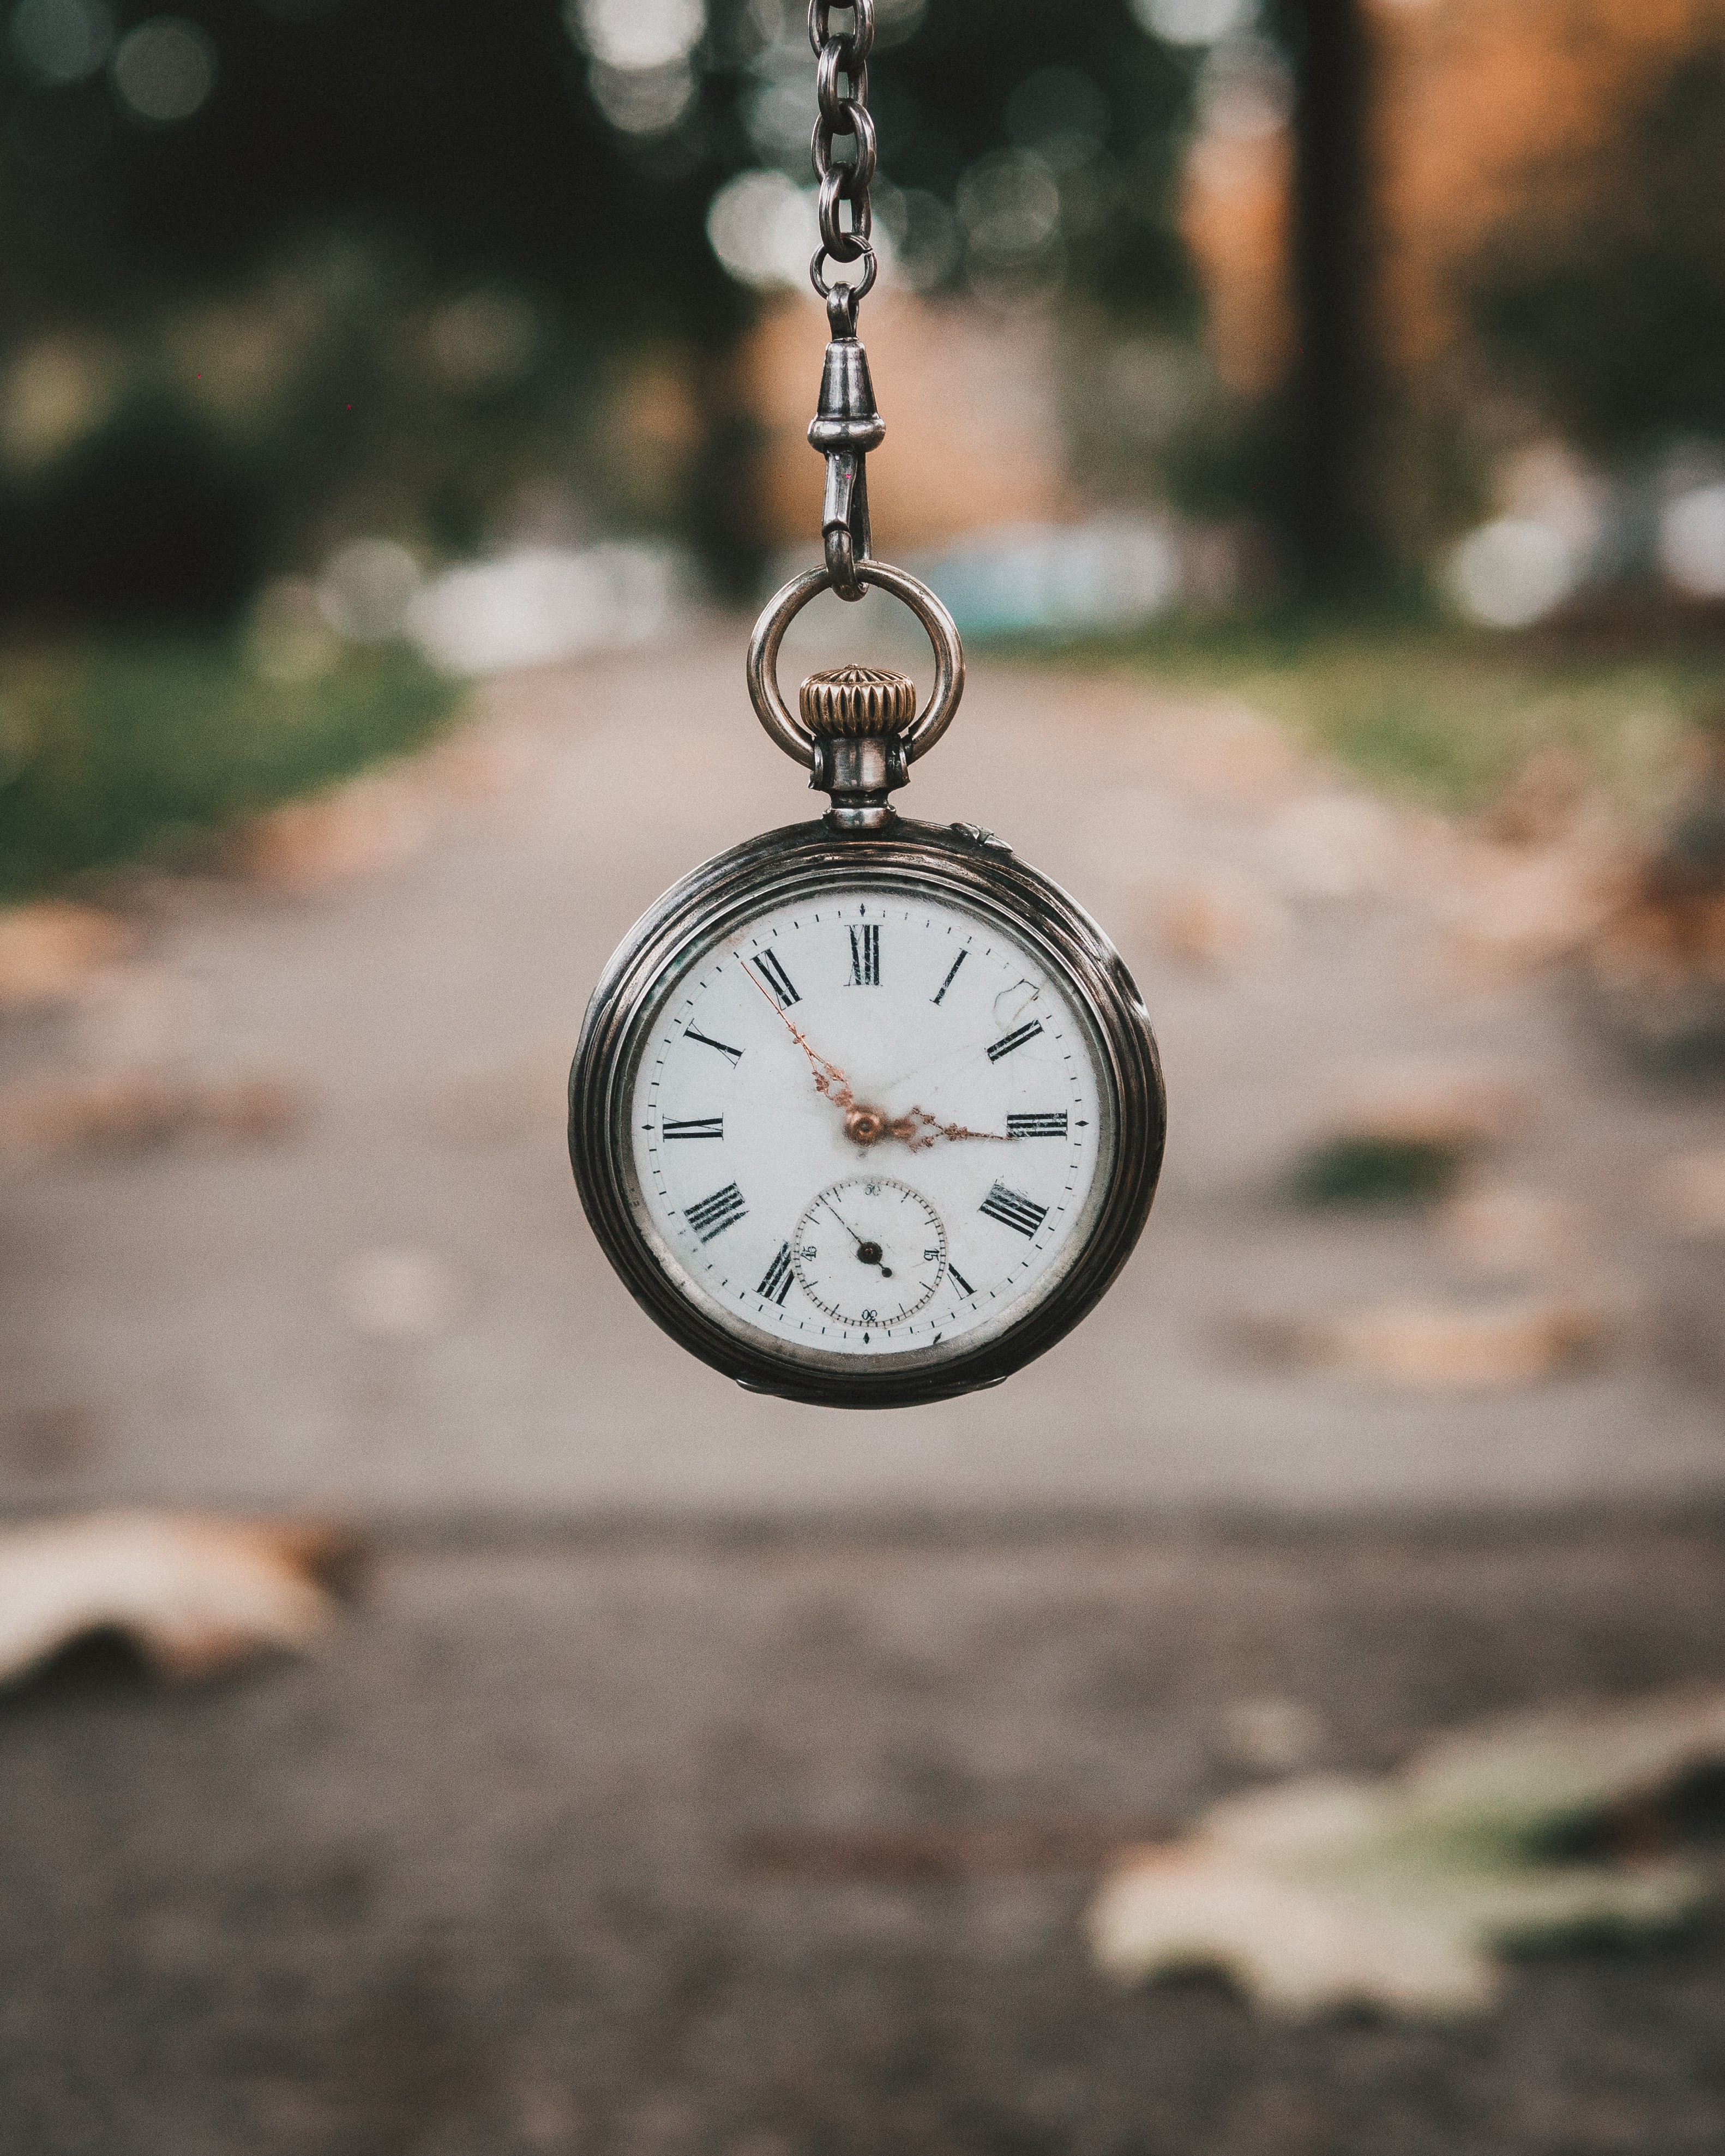 Antique timepiece set against a fall background